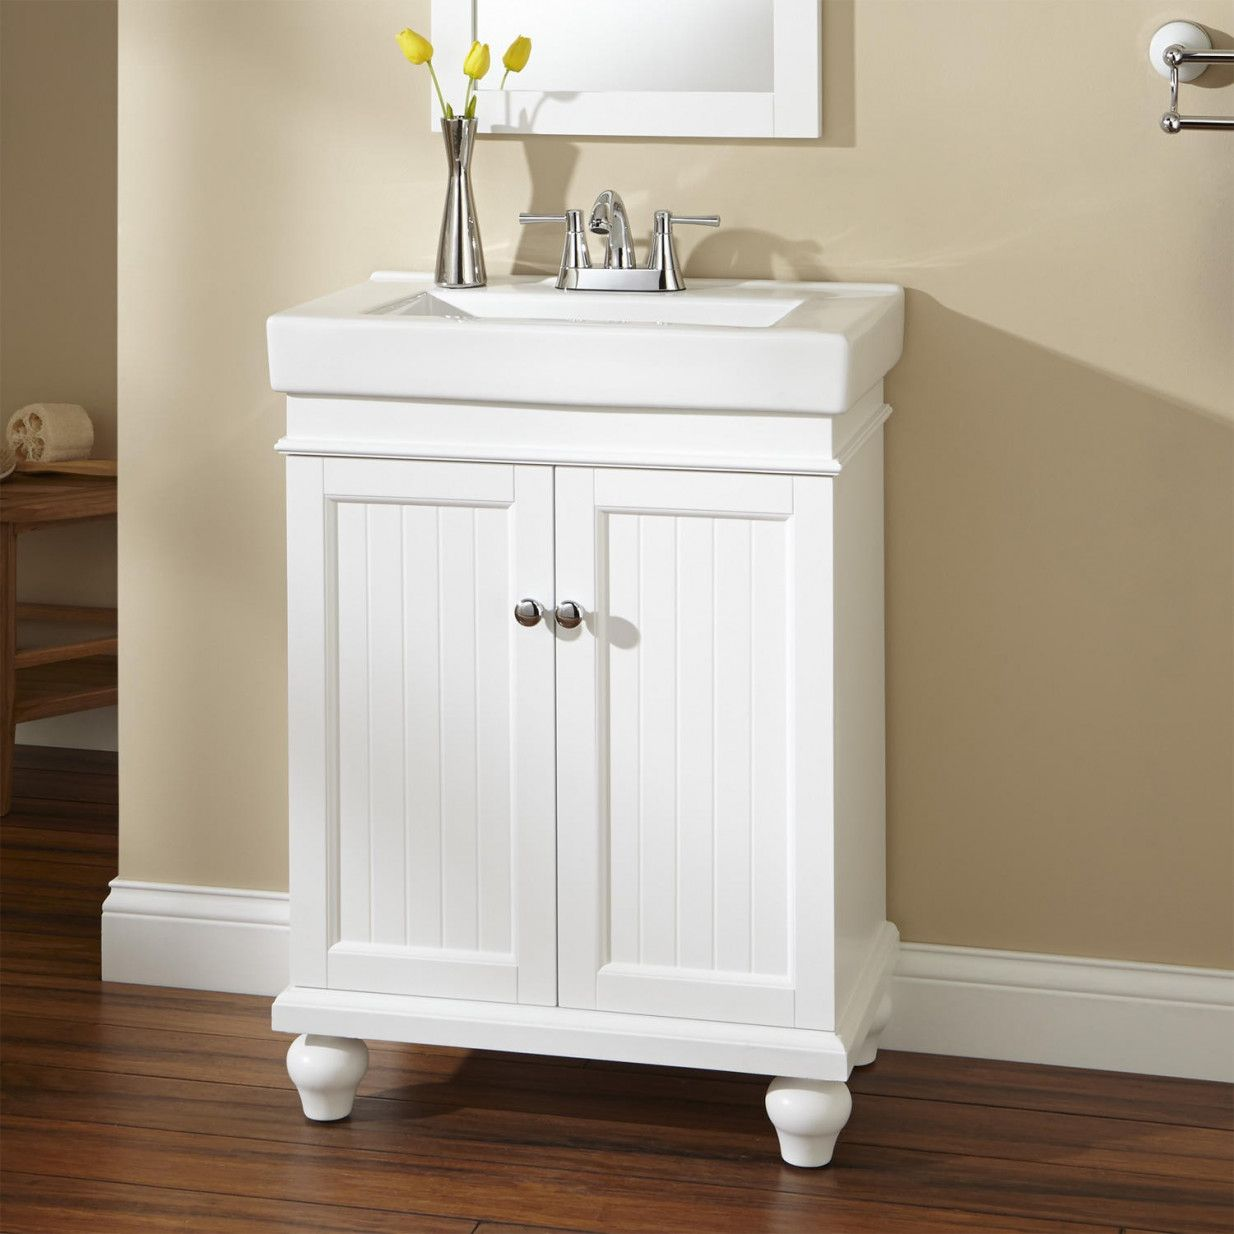 99 Bathroom Vanity Cabinets White Most Popular Interior Paint Colors Check More At 24 Inch Bathroom Vanity White Vanity Bathroom Home Depot Bathroom Vanity